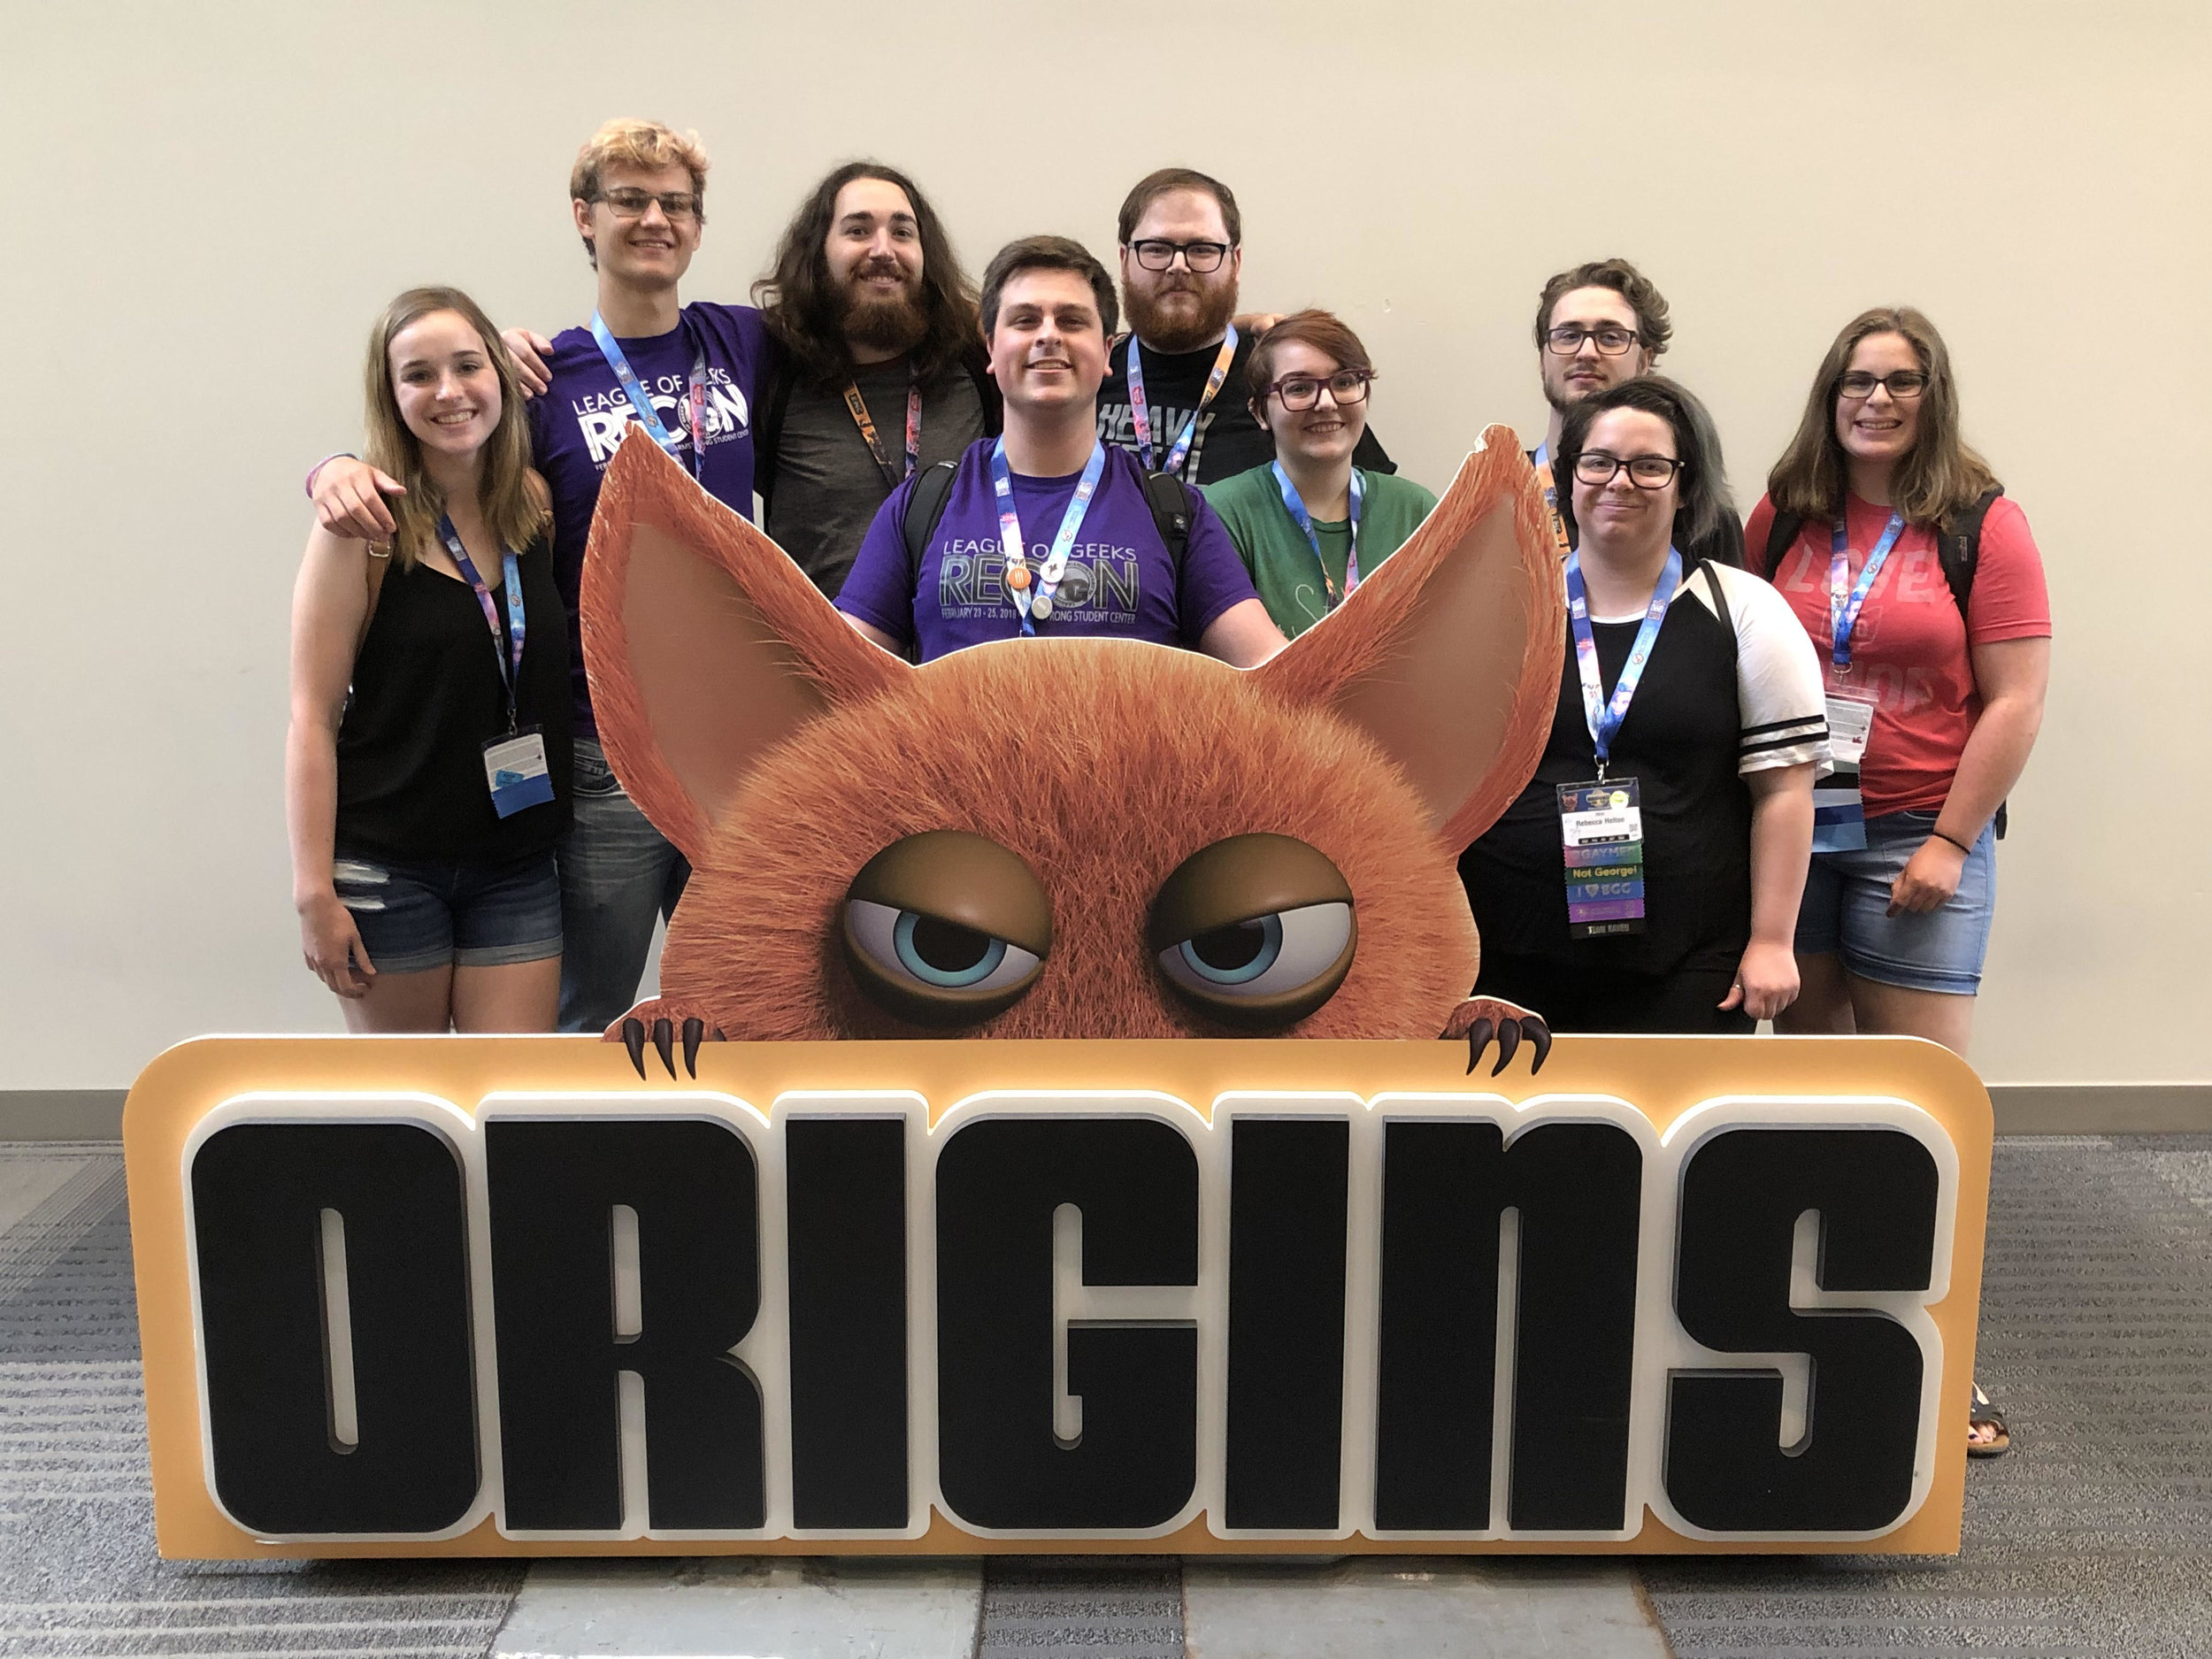 Past, present, and future of the League of Geeks unites at Origins 2019.